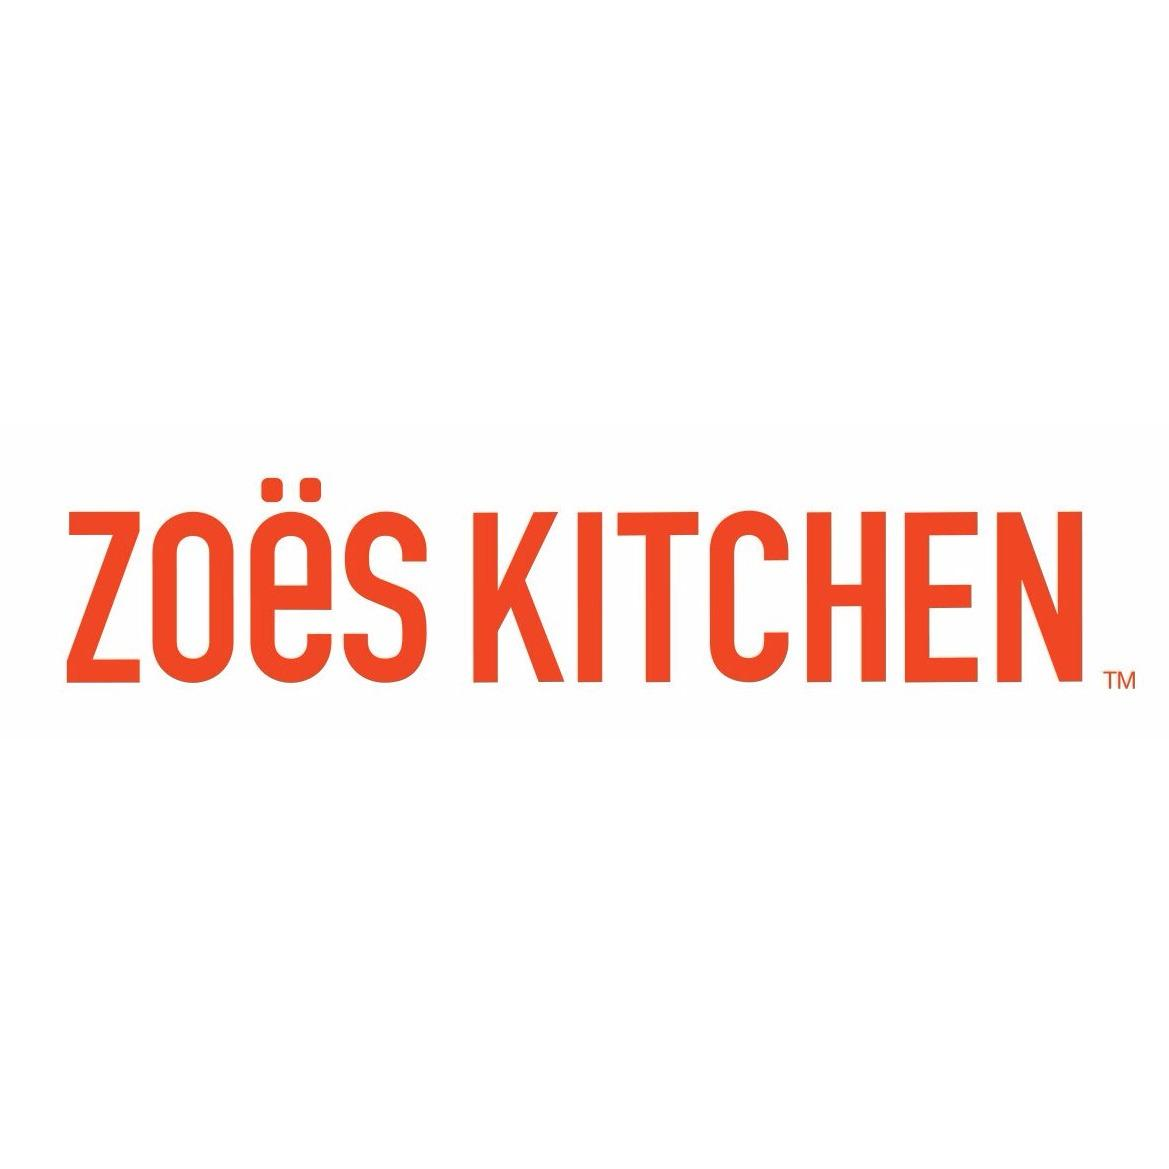 Zoes Kitchen image 10